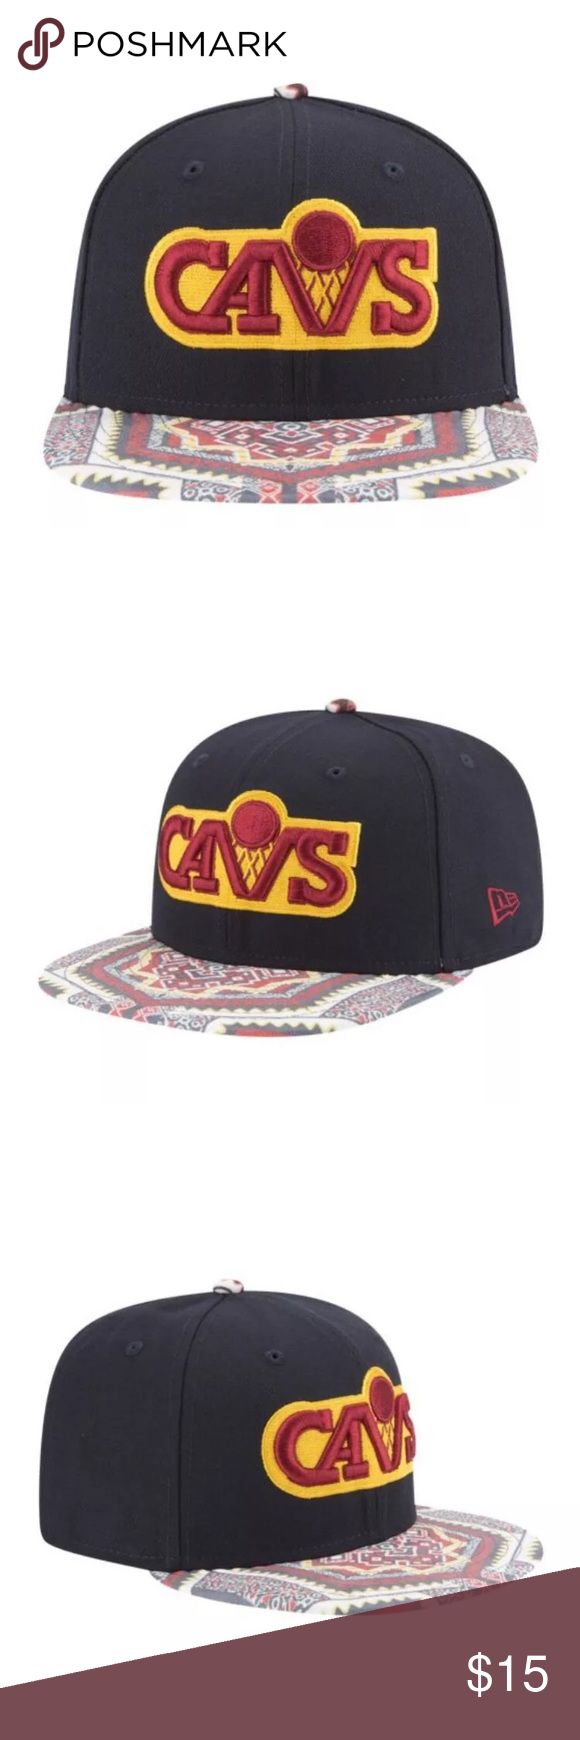 New Era 9Fifty Kaleidovize Native Cavaliers Hat RARE New Era 9Fifty Kaleidovize Native Cleveland Cavaliers Hat Cap Lebron James  Brand new  Adjustable for the perfect fit  Brand new with tags New Era Accessories Hats